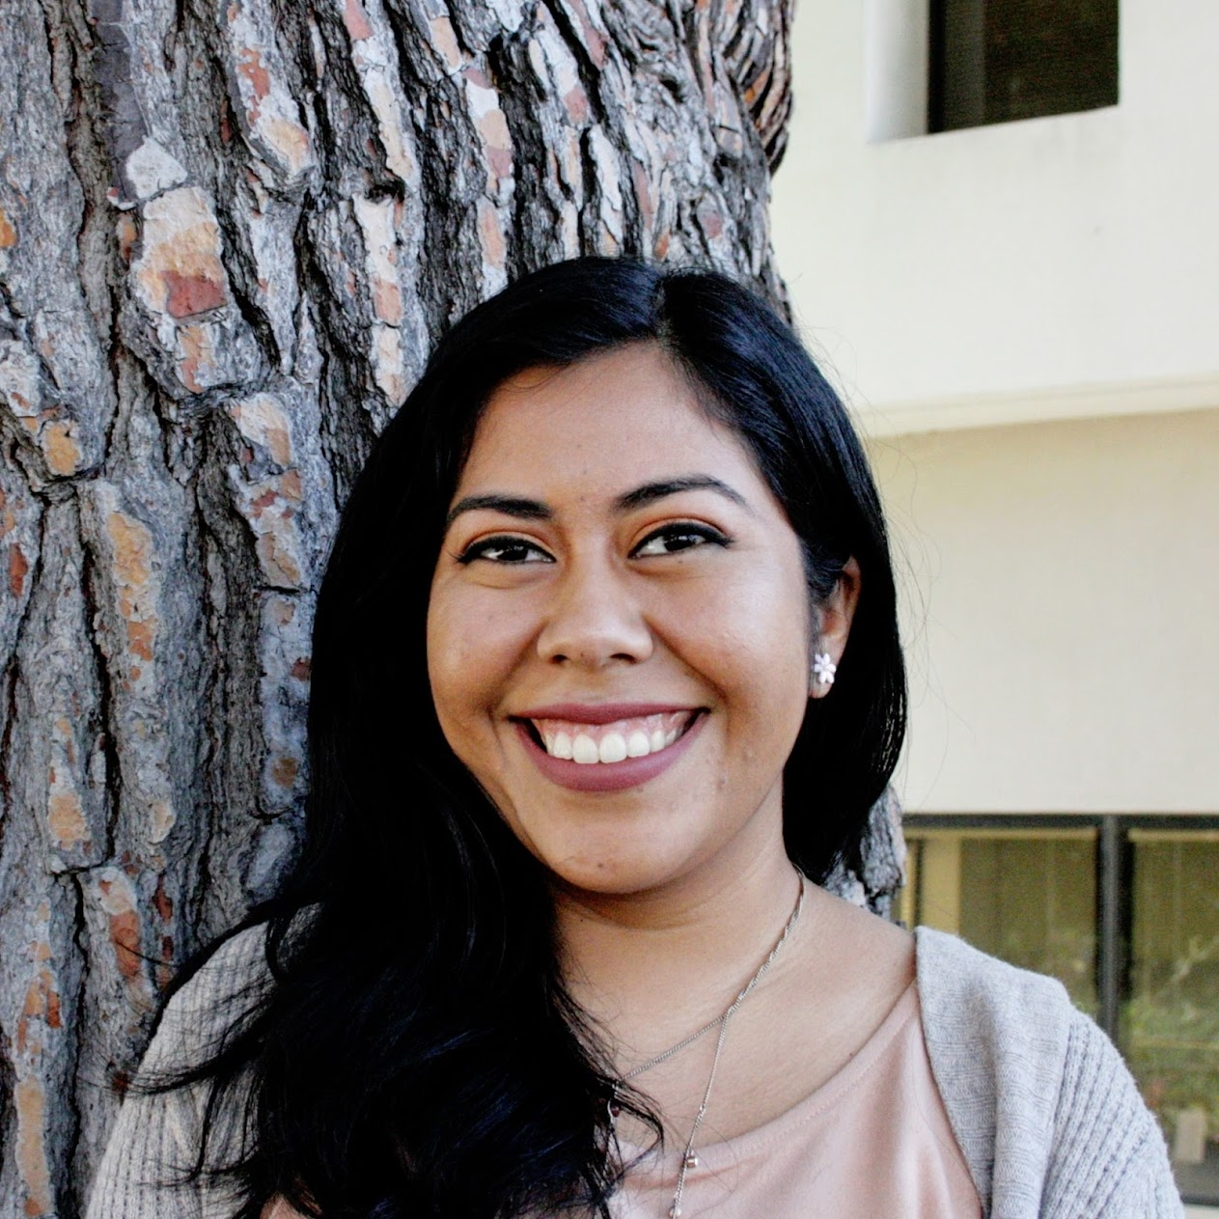 Vania Ramirez, REACH Program Co-Coordinator